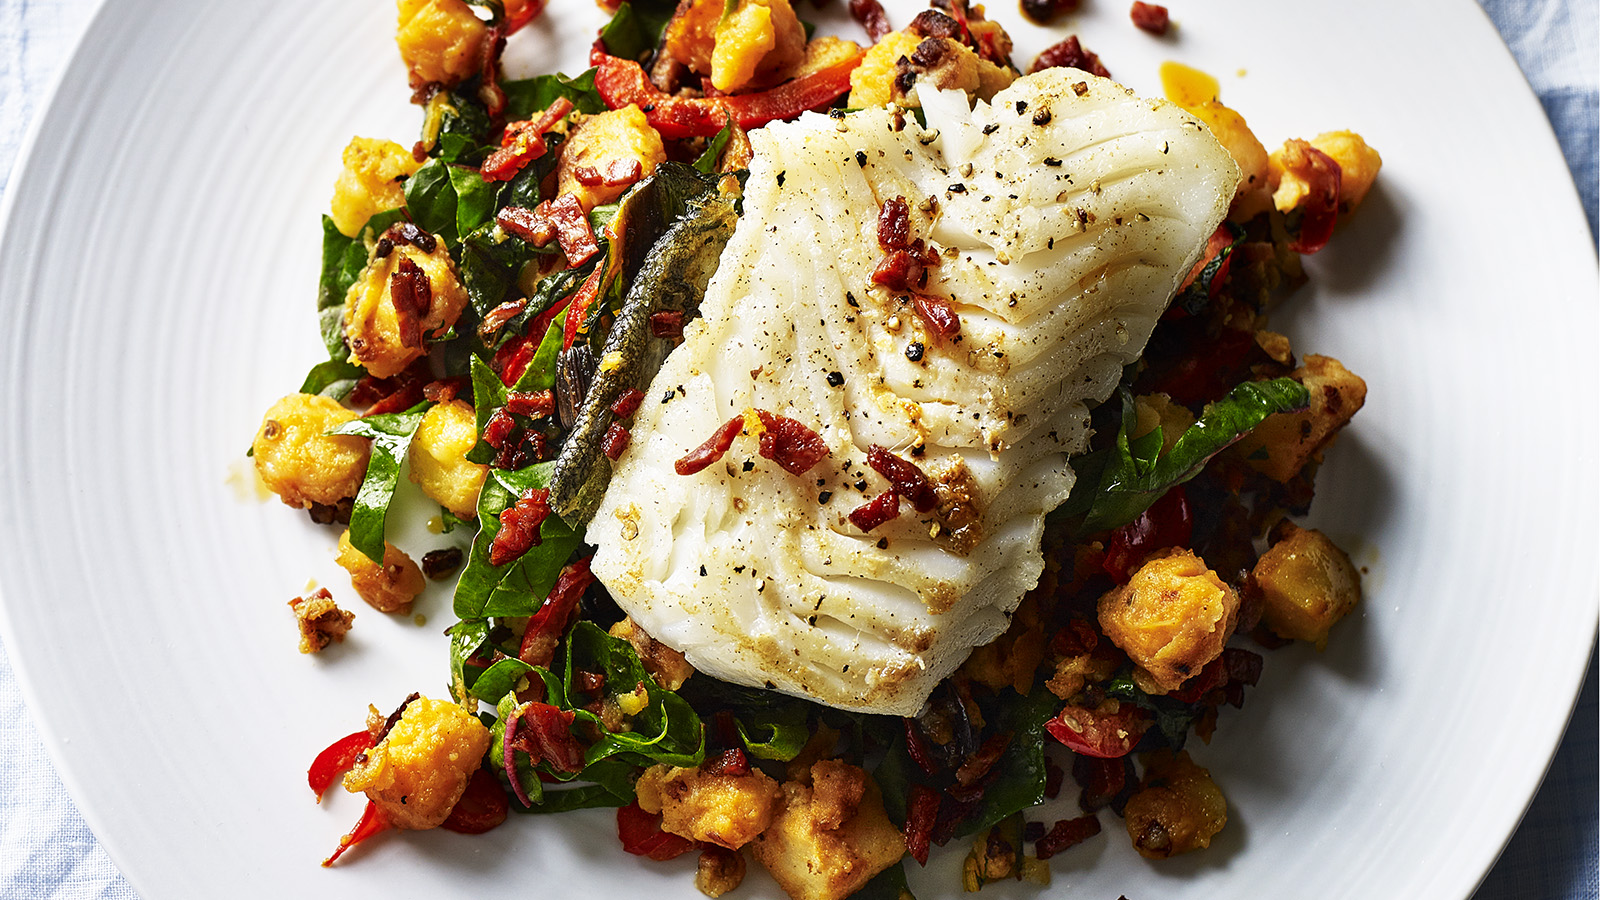 Healthy Breakfast Recipe Delectable And Auto Electrical Wiring Diagram Craftsman 917 273761 Pan Seared Cod With Potatoes U0026 Chorizo